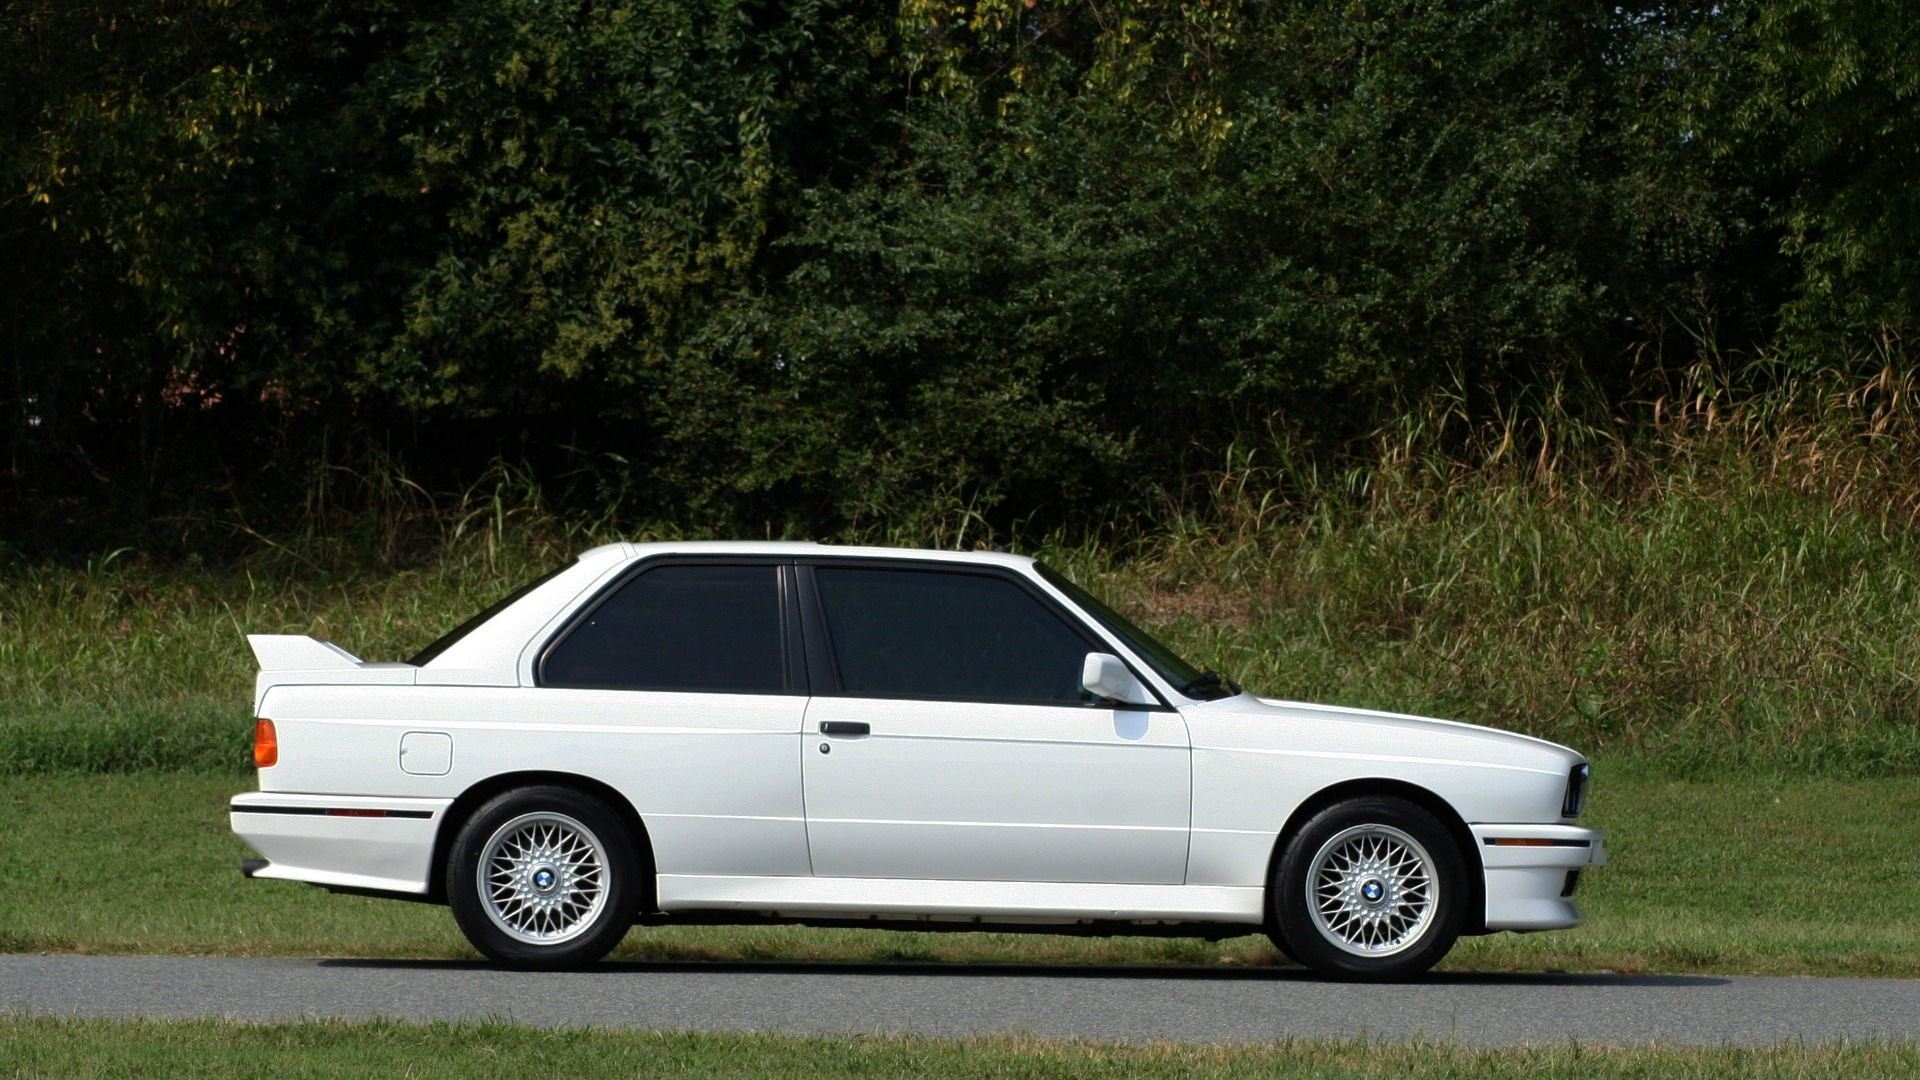 Used 1989 BMW M3 COUPE 2DR / 5-SPEED MAN / LOW MILES / SUPER CLEAN for sale Sold at Formula Imports in Charlotte NC 28227 10